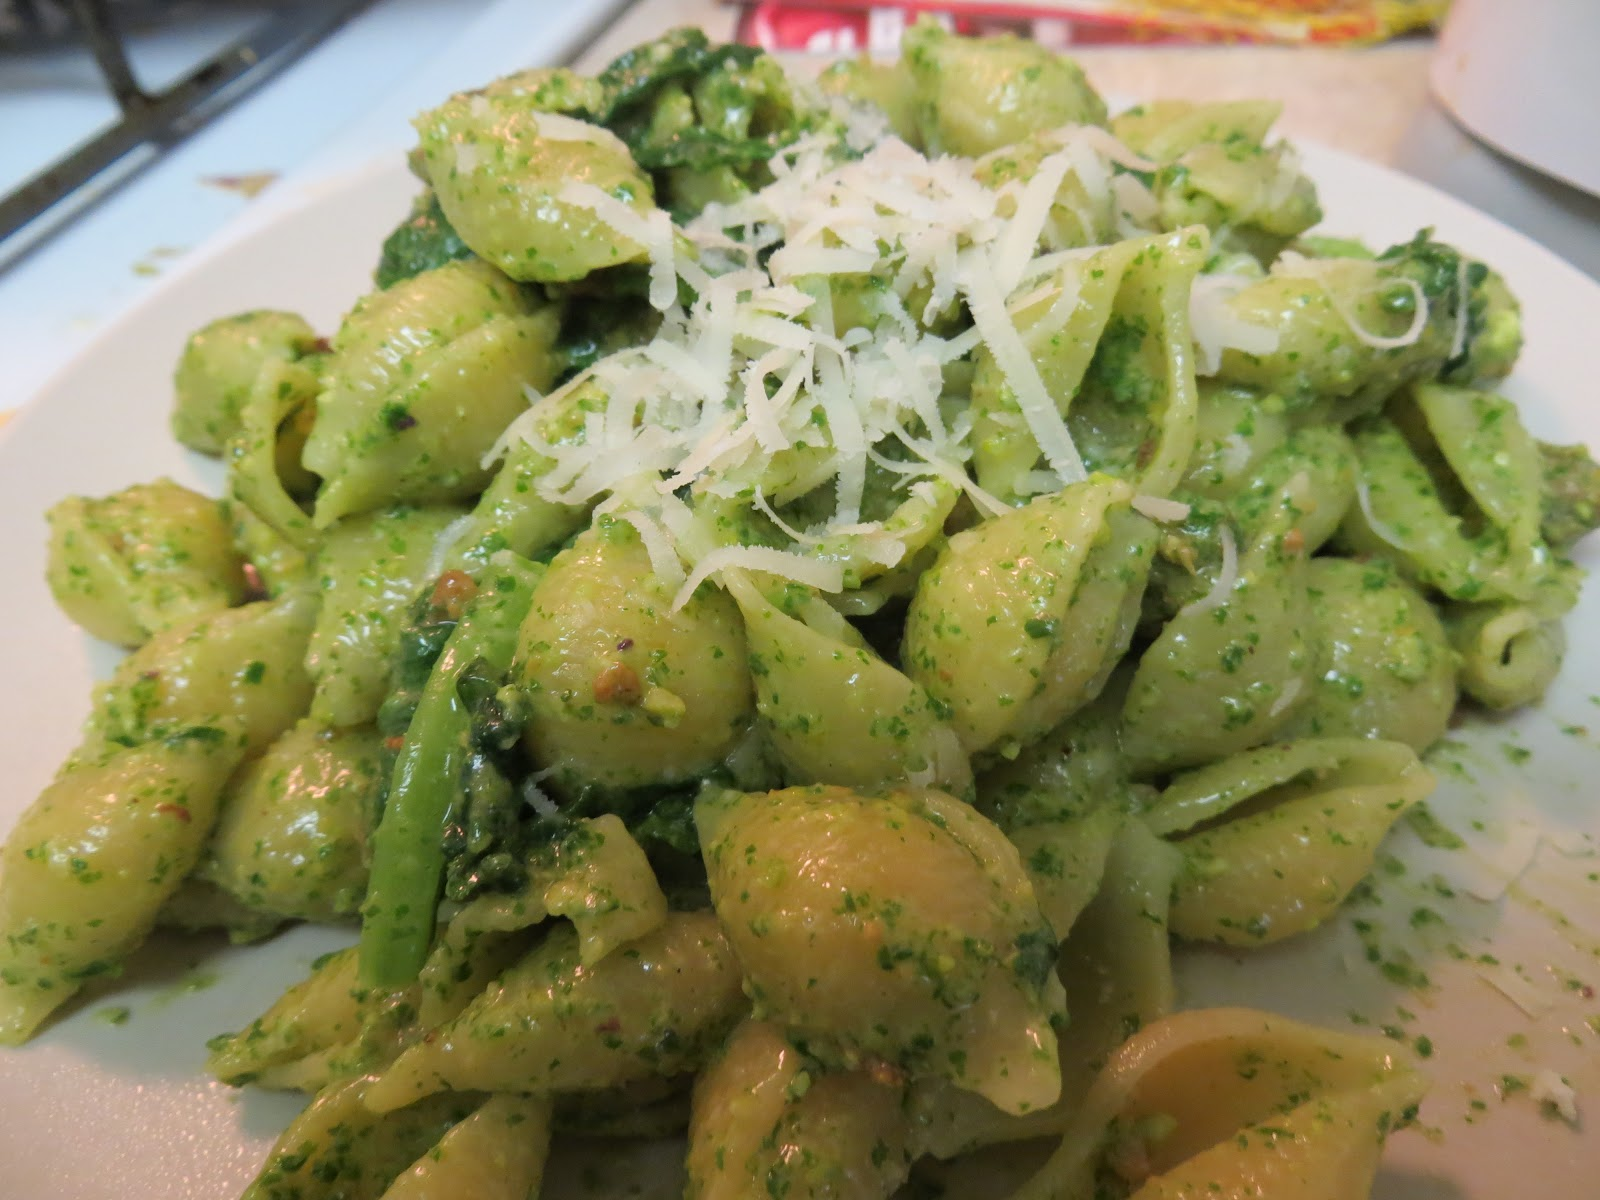 and pesto add some olive oil and parmigiano and stir to combine